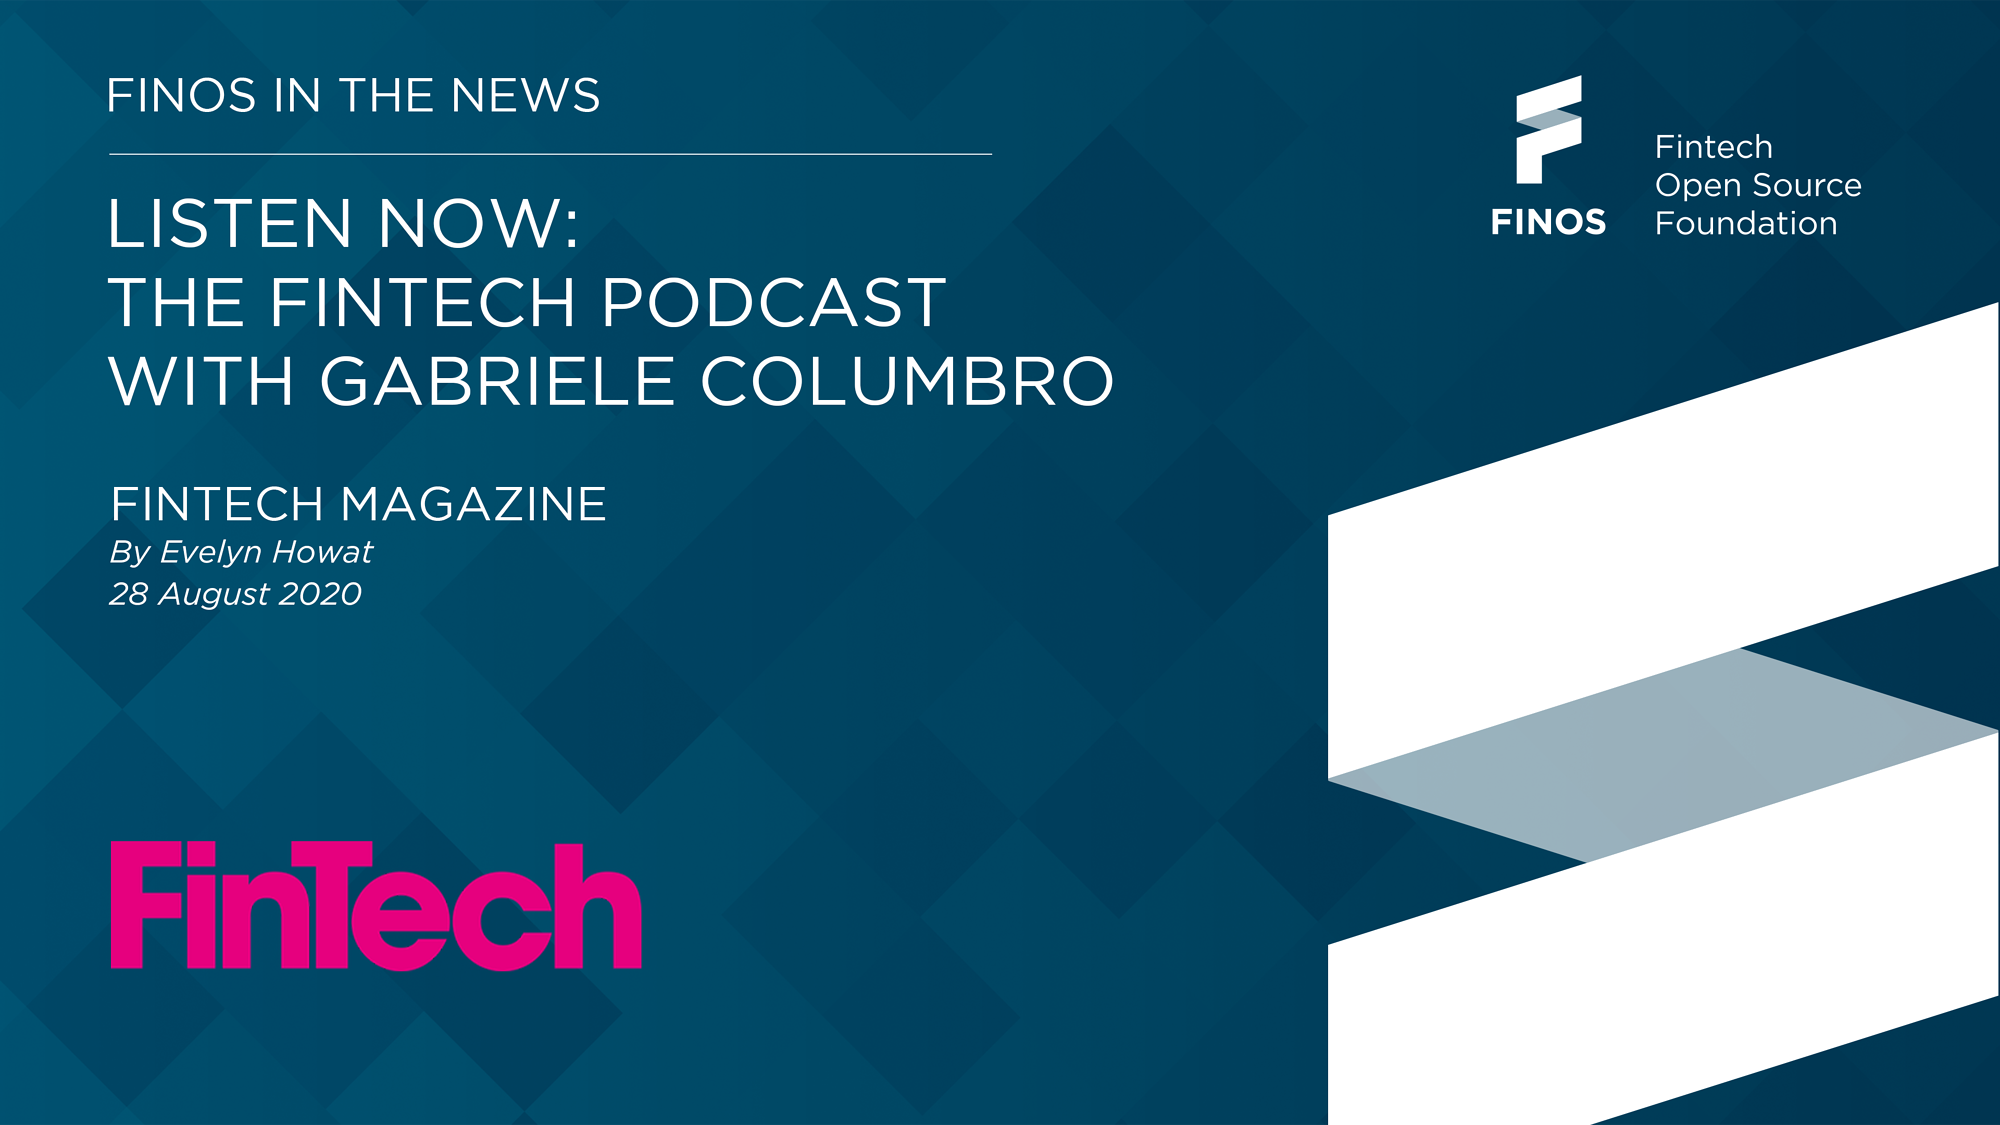 FINOS-in-the-news-fintech-magazine-podcast-aug-20